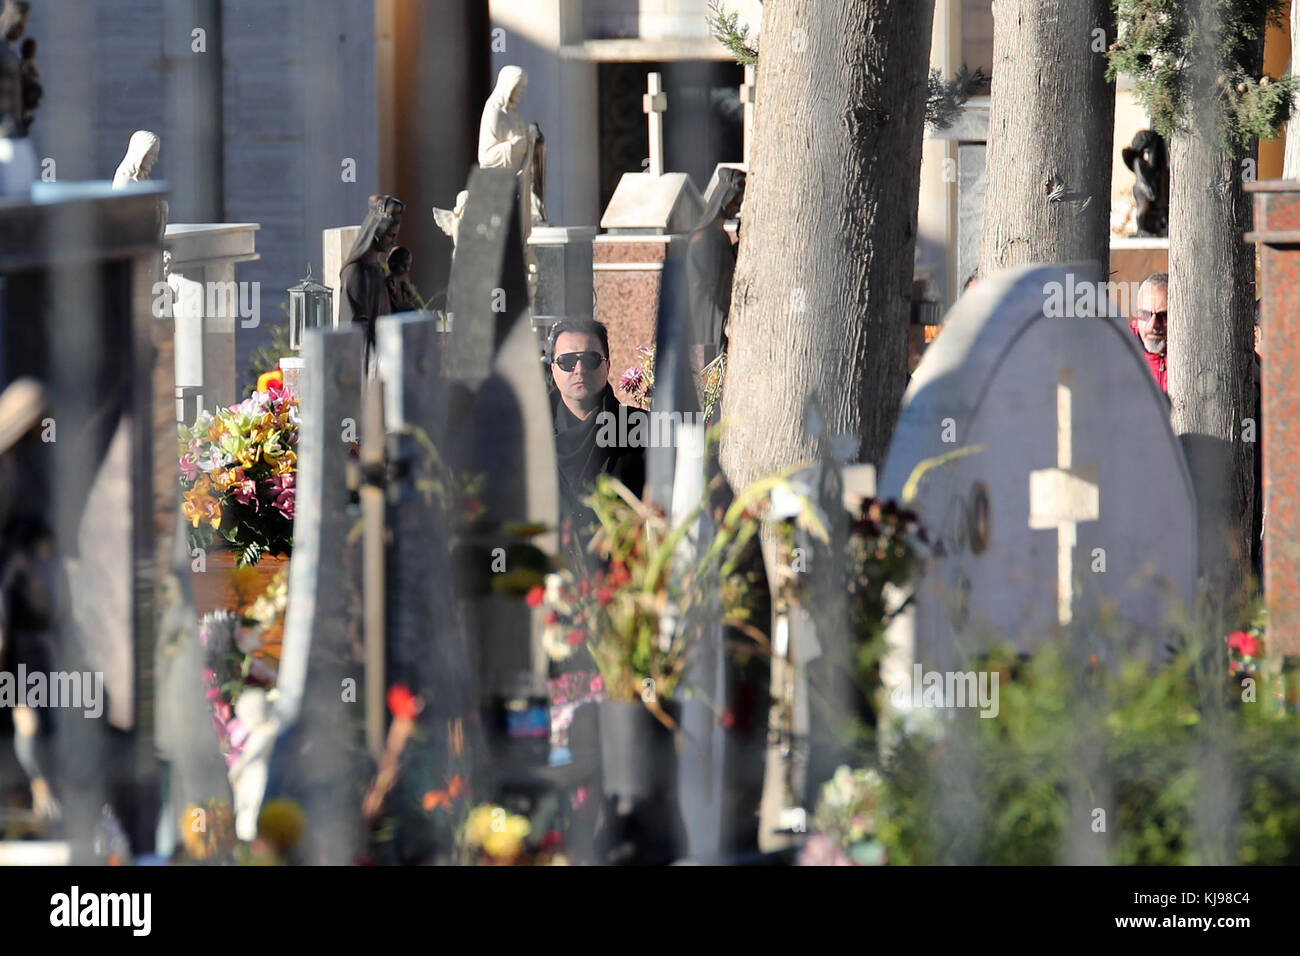 Corleone, Italy. 22nd November, 2017. Corleone, a funeral of Salvatore Riina known as Toto 'Riina, the head - Stock Image